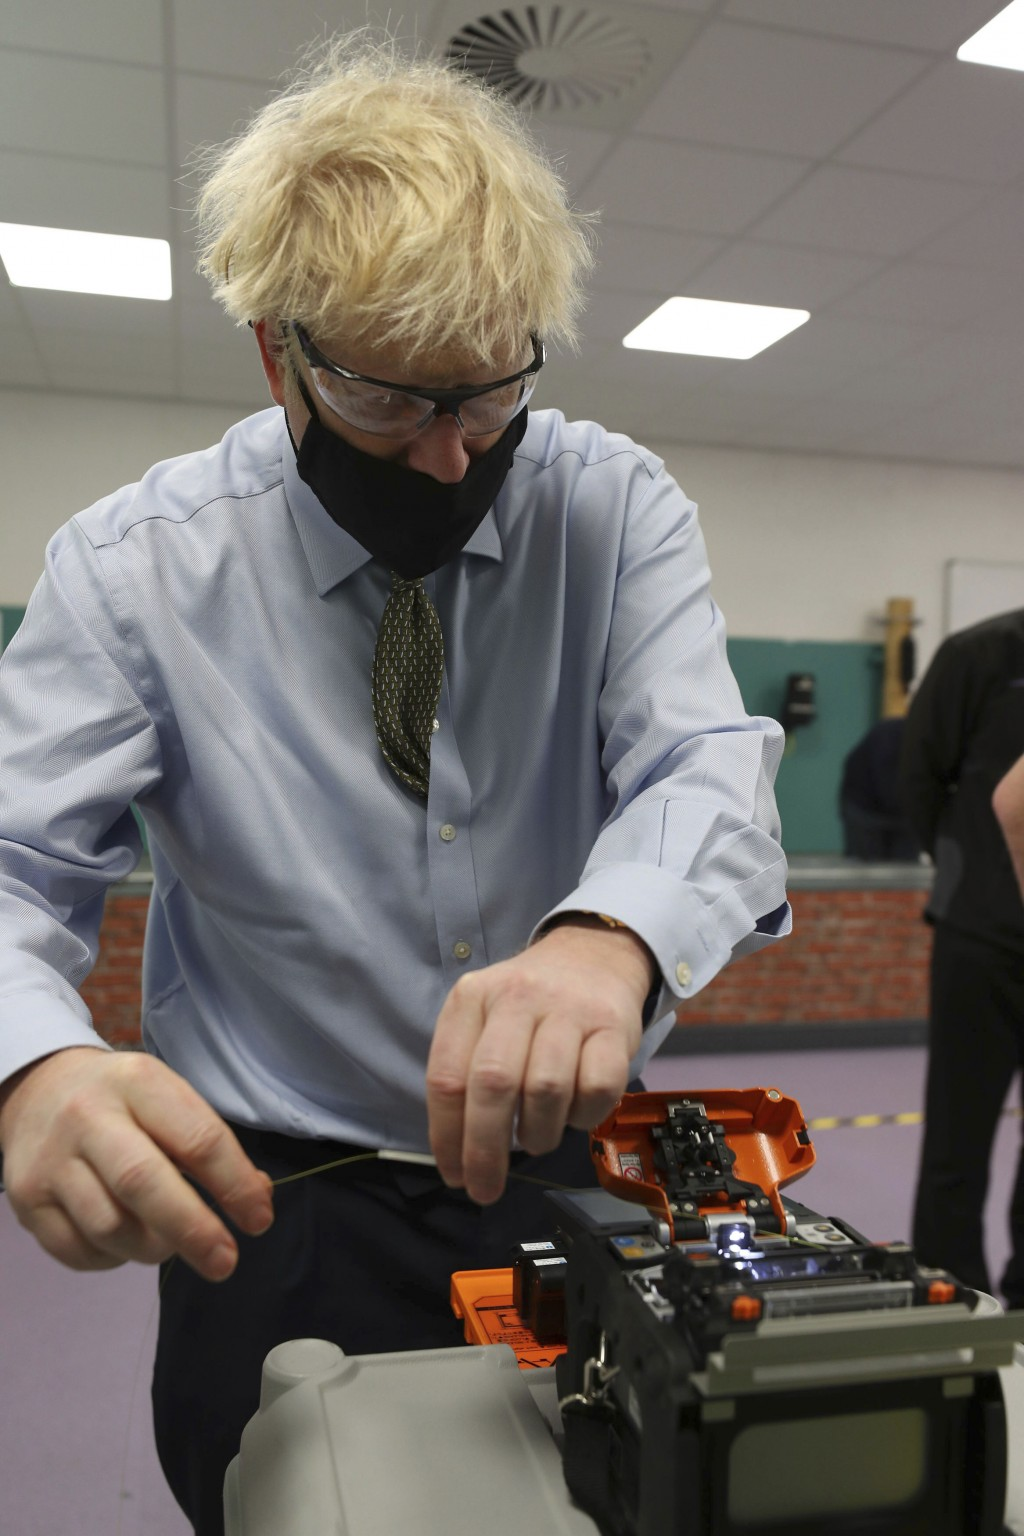 Britain's Prime Minister Boris Johnson tries his hand at cable splicing, during a visit to the Openreach L and D Training Centre in Bolton, England, F...